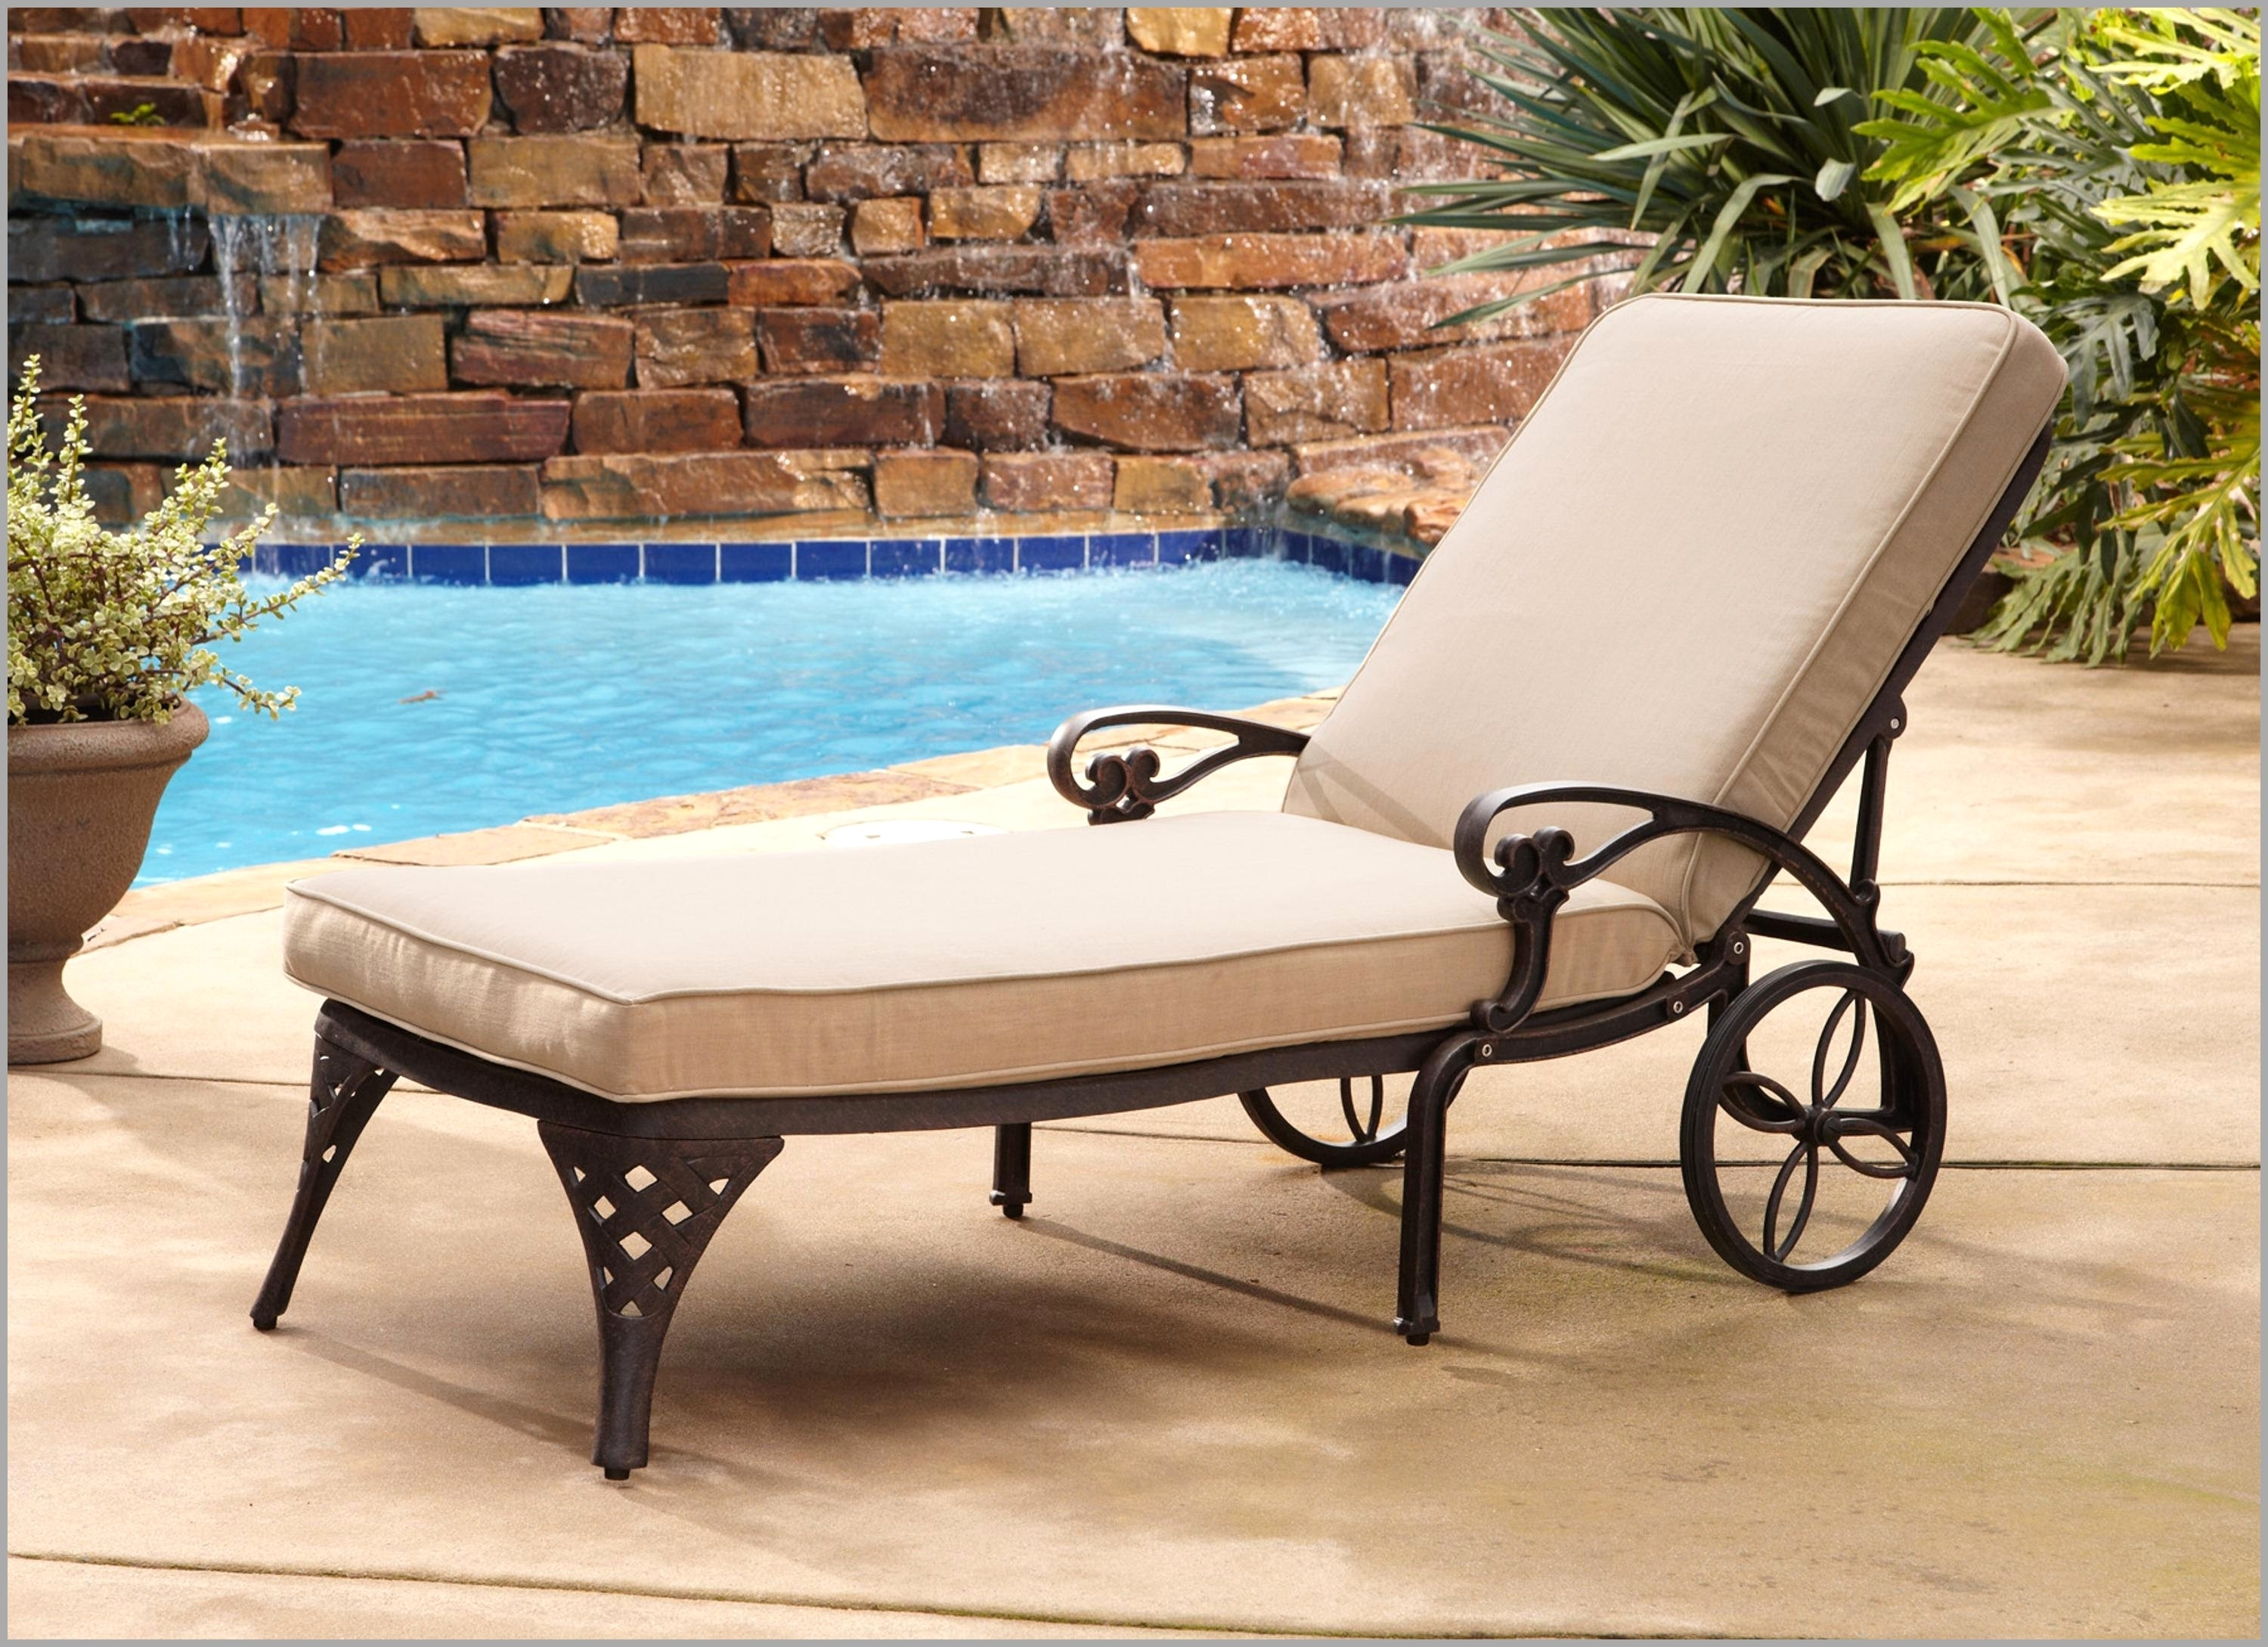 Popular Chaise Lounge Chairs For Pool Area Inside Best Poolside Lounge Chairs Accessories 20316 – Chair Ideas (View 8 of 15)